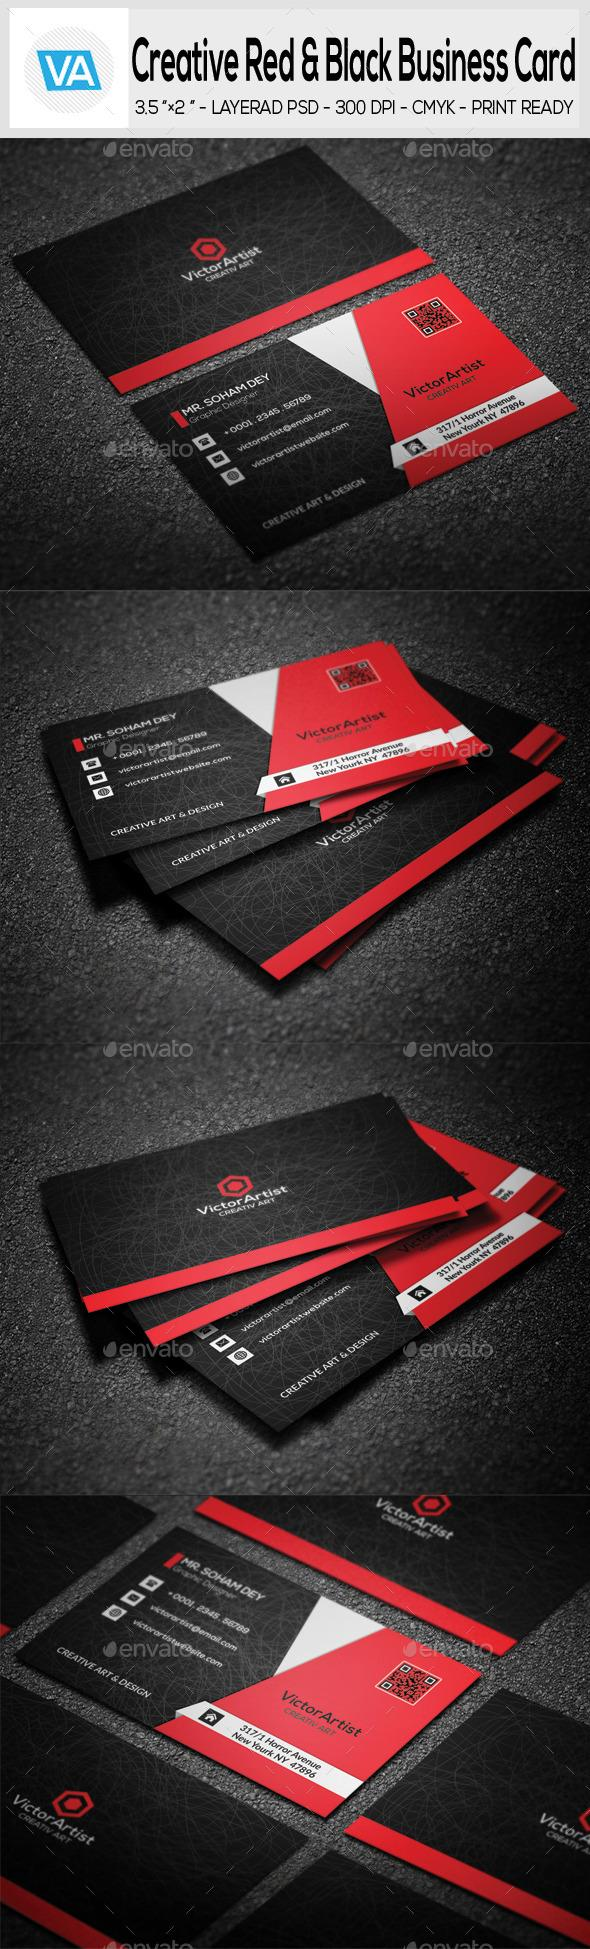 Creative Red Black Business Card Black Business Card Business - 35 x2 business card template